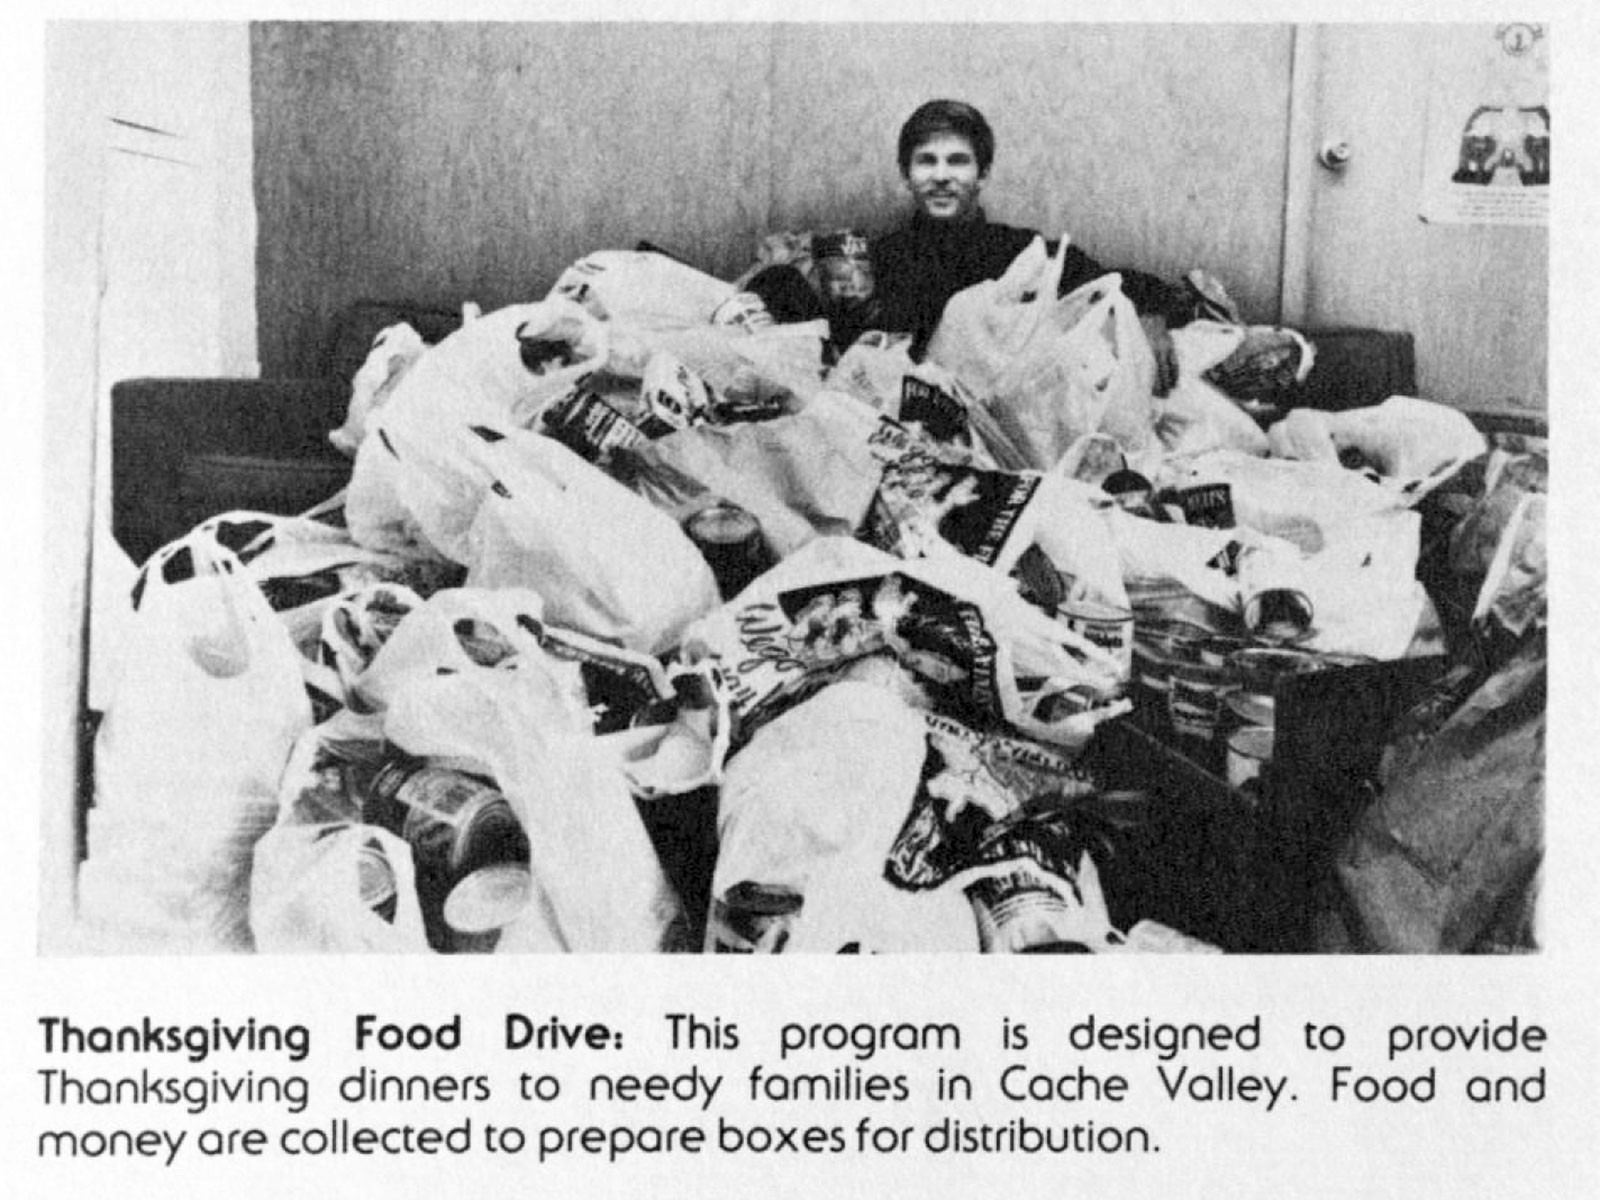 Historical image of the Thanksgiving Food Drive.